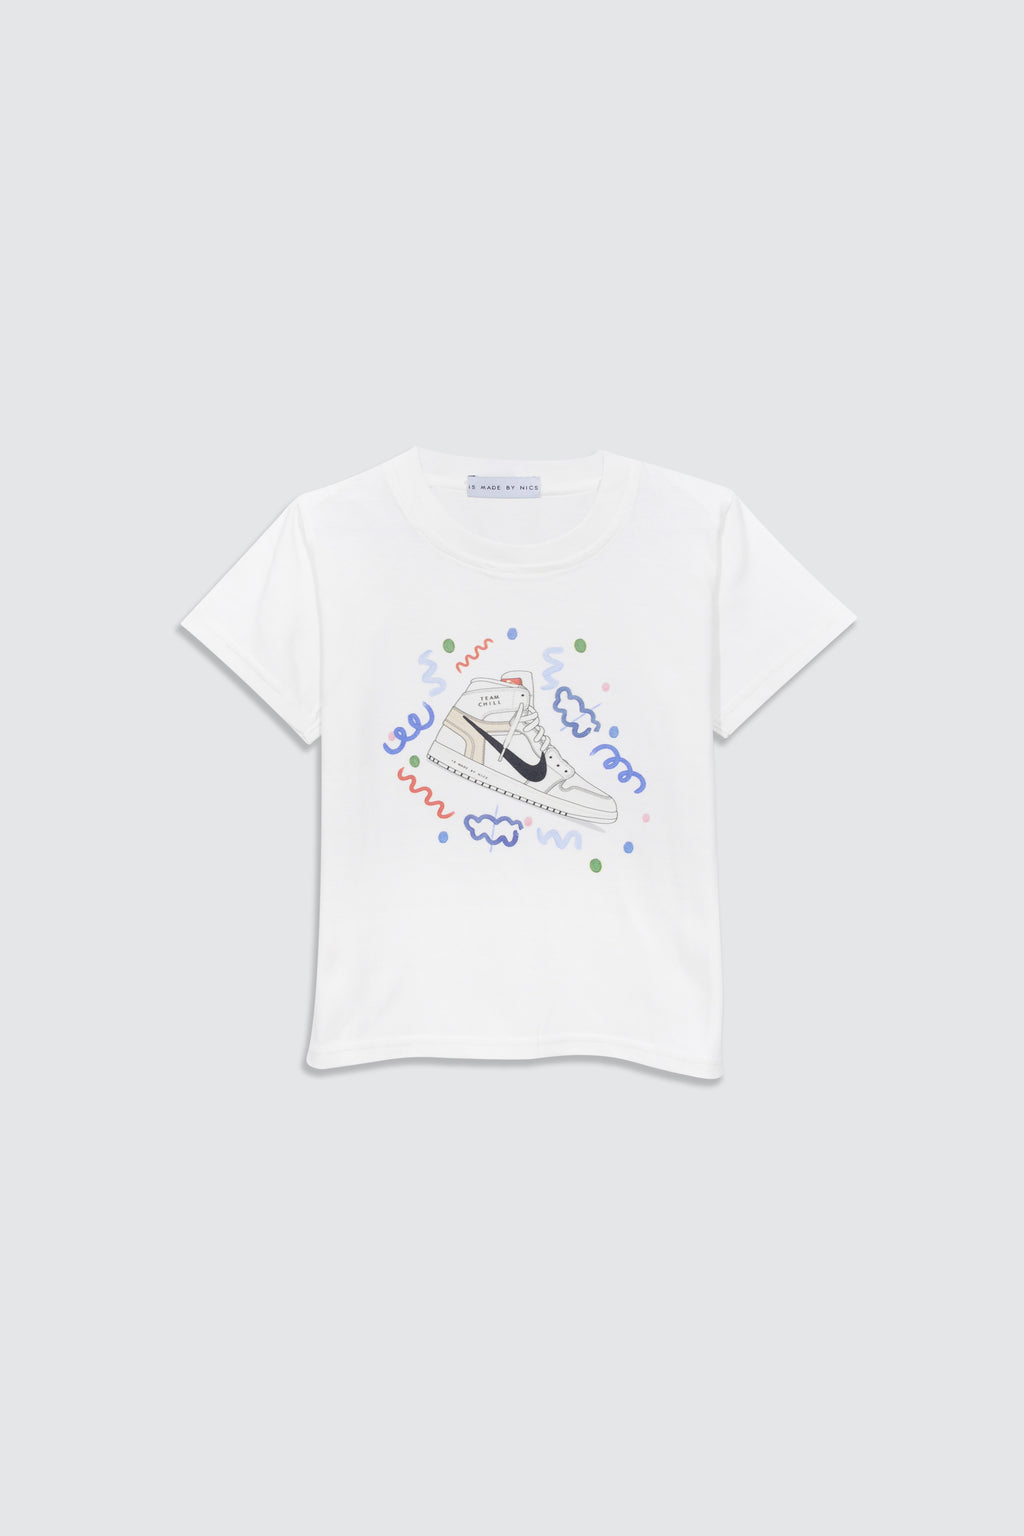 [Made By Nics] MBN-Nike T-Shirt [9M-9Y]